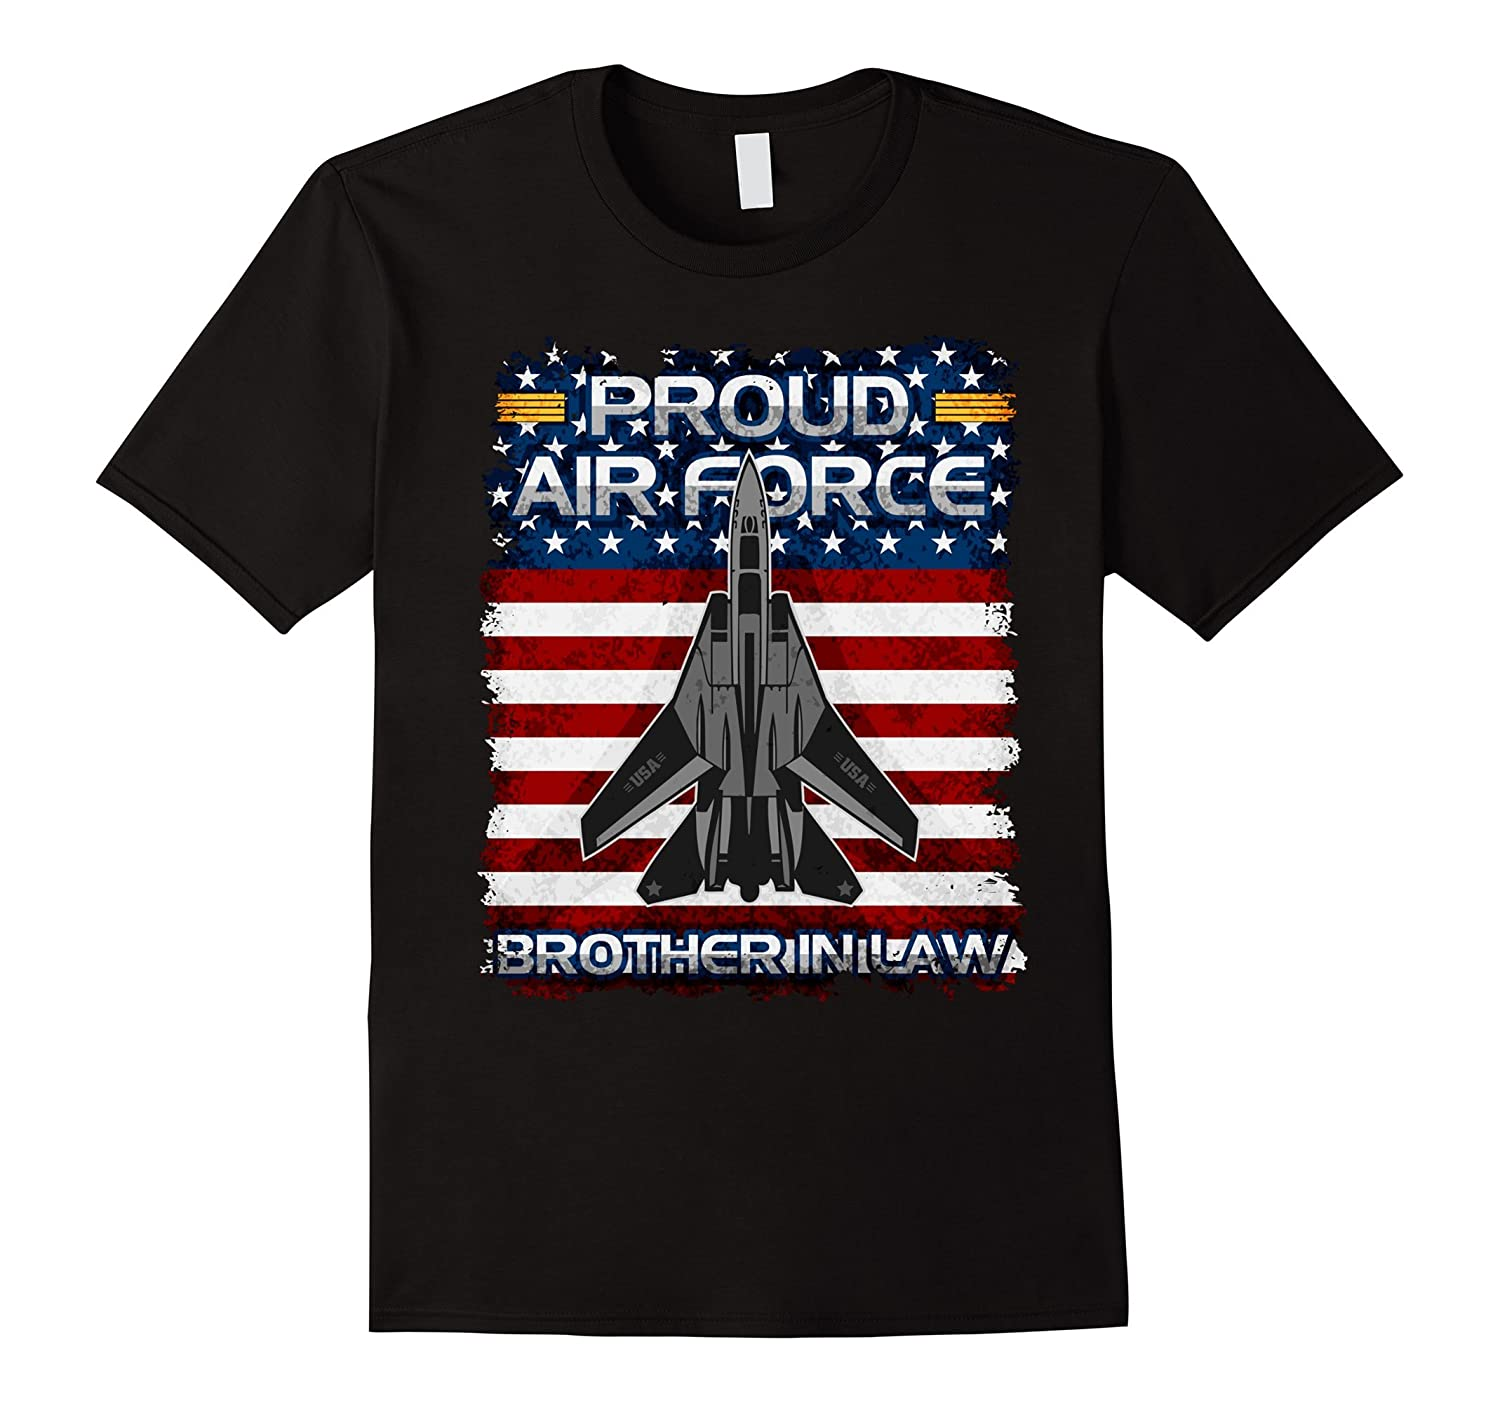 Mens Proud Air Force Brother in Law Military Support T-shirt